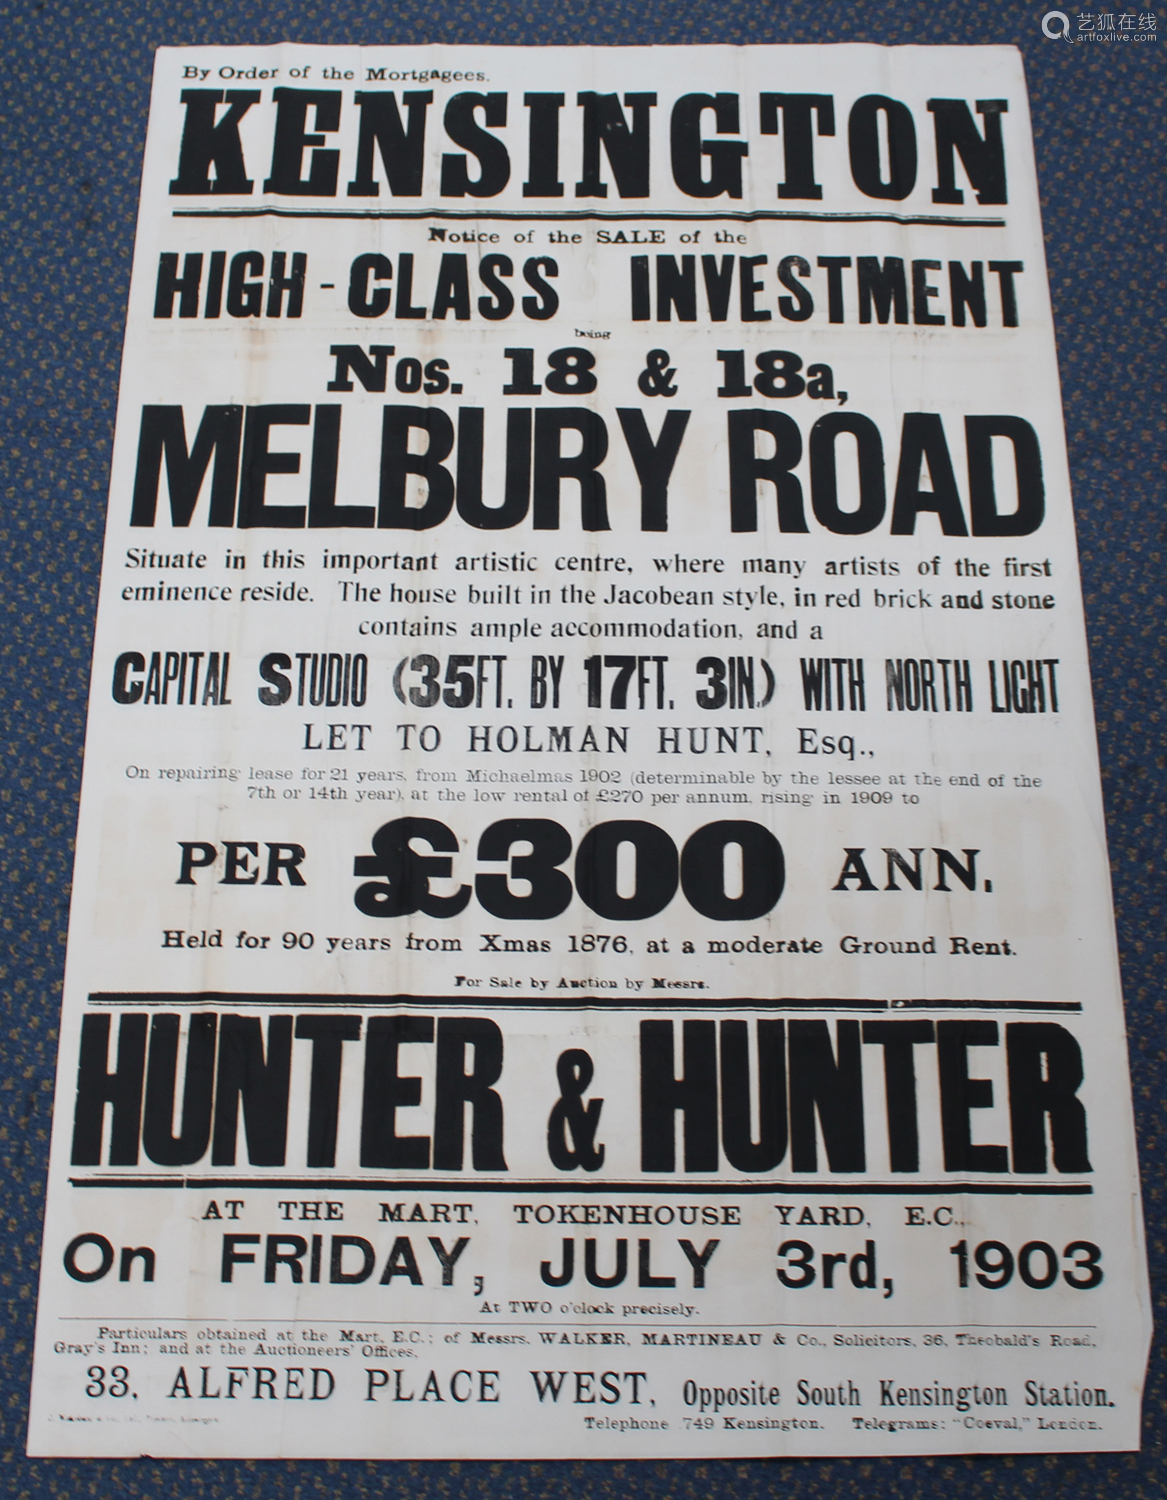 Wakeham & Co (printers) - 'Notice of the Sale of the High-Class Investment Nos. 18 & 18a, Melbury